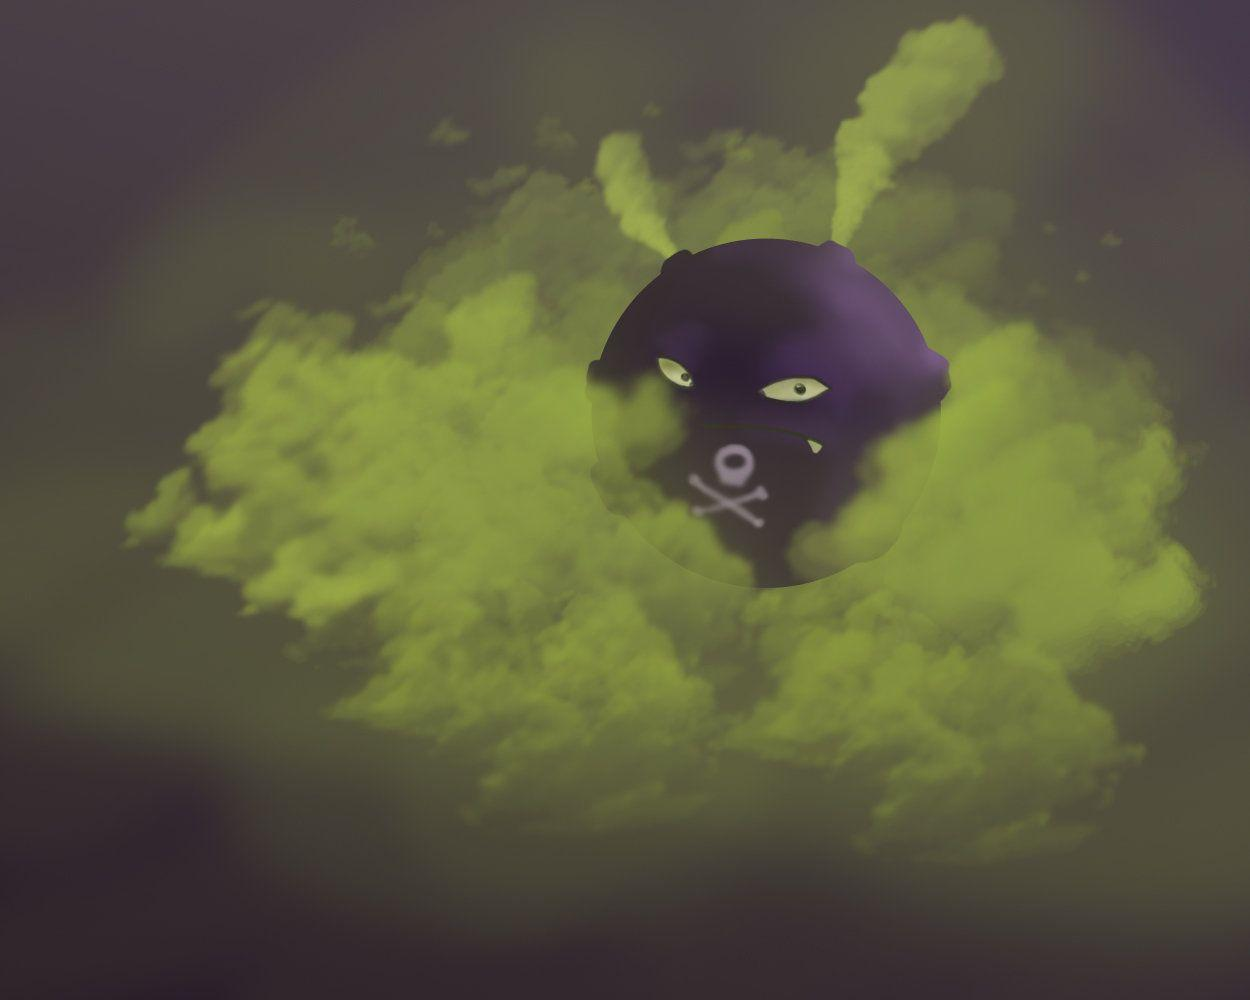 Koffing by SebiTheLost on DeviantArt